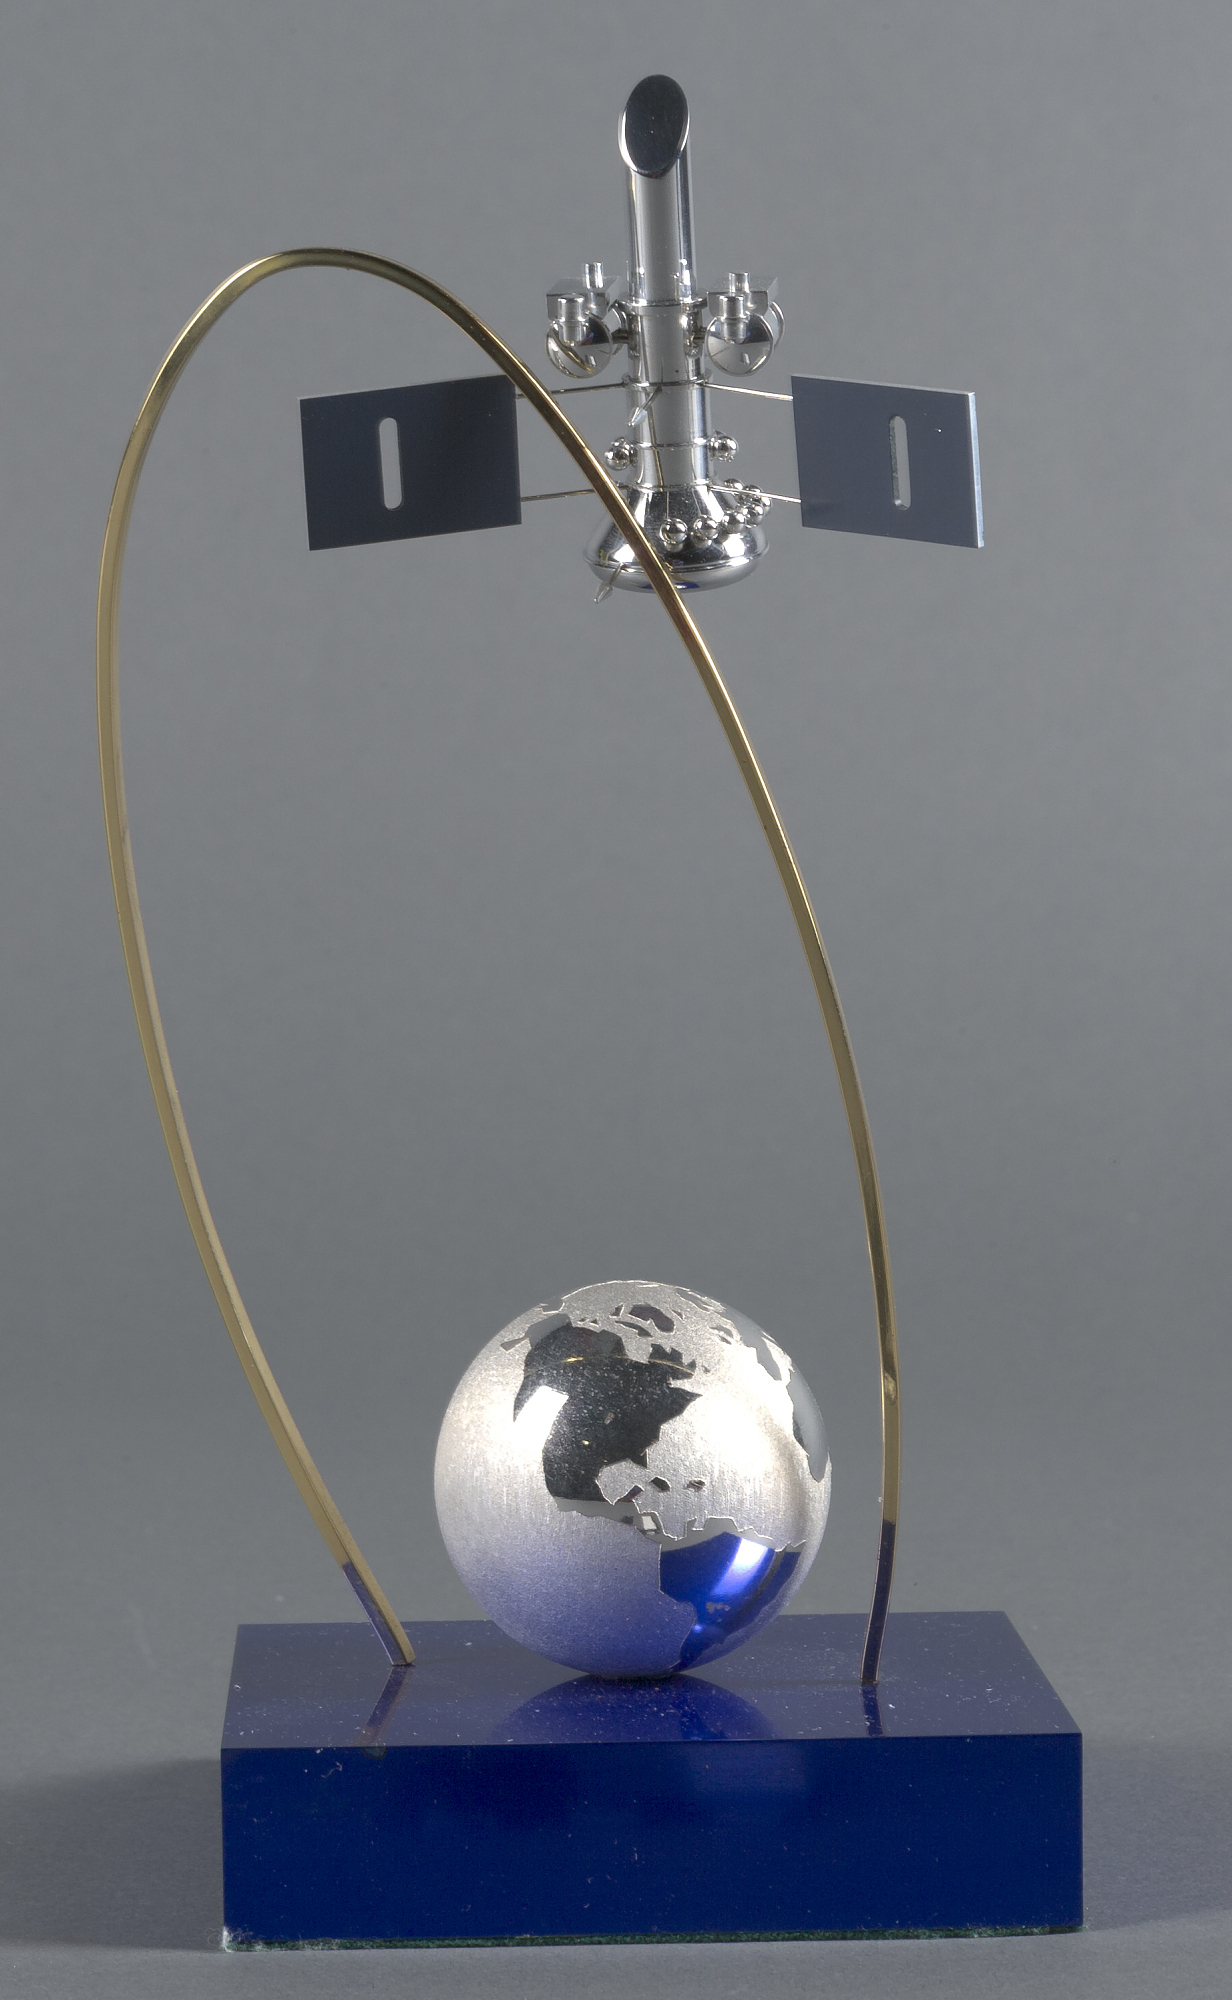 Image of : Satellite, Astrophysics, Granat, Commemorative